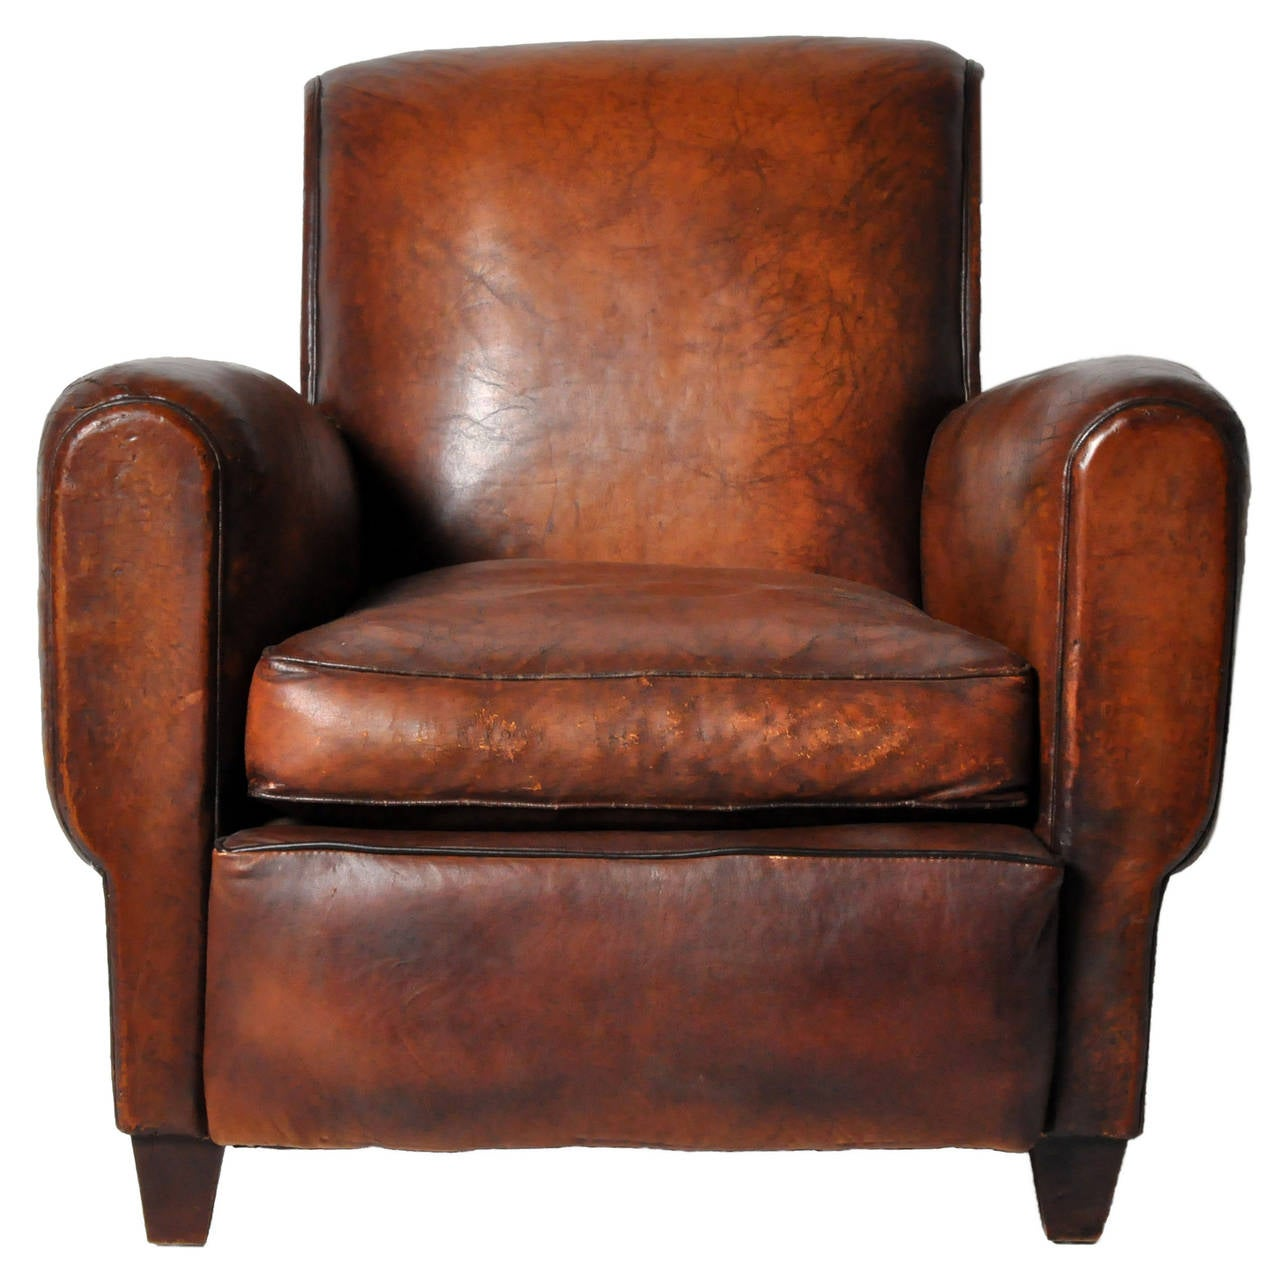 art deco club chairs leather medical recliner chair vintage at 1stdibs